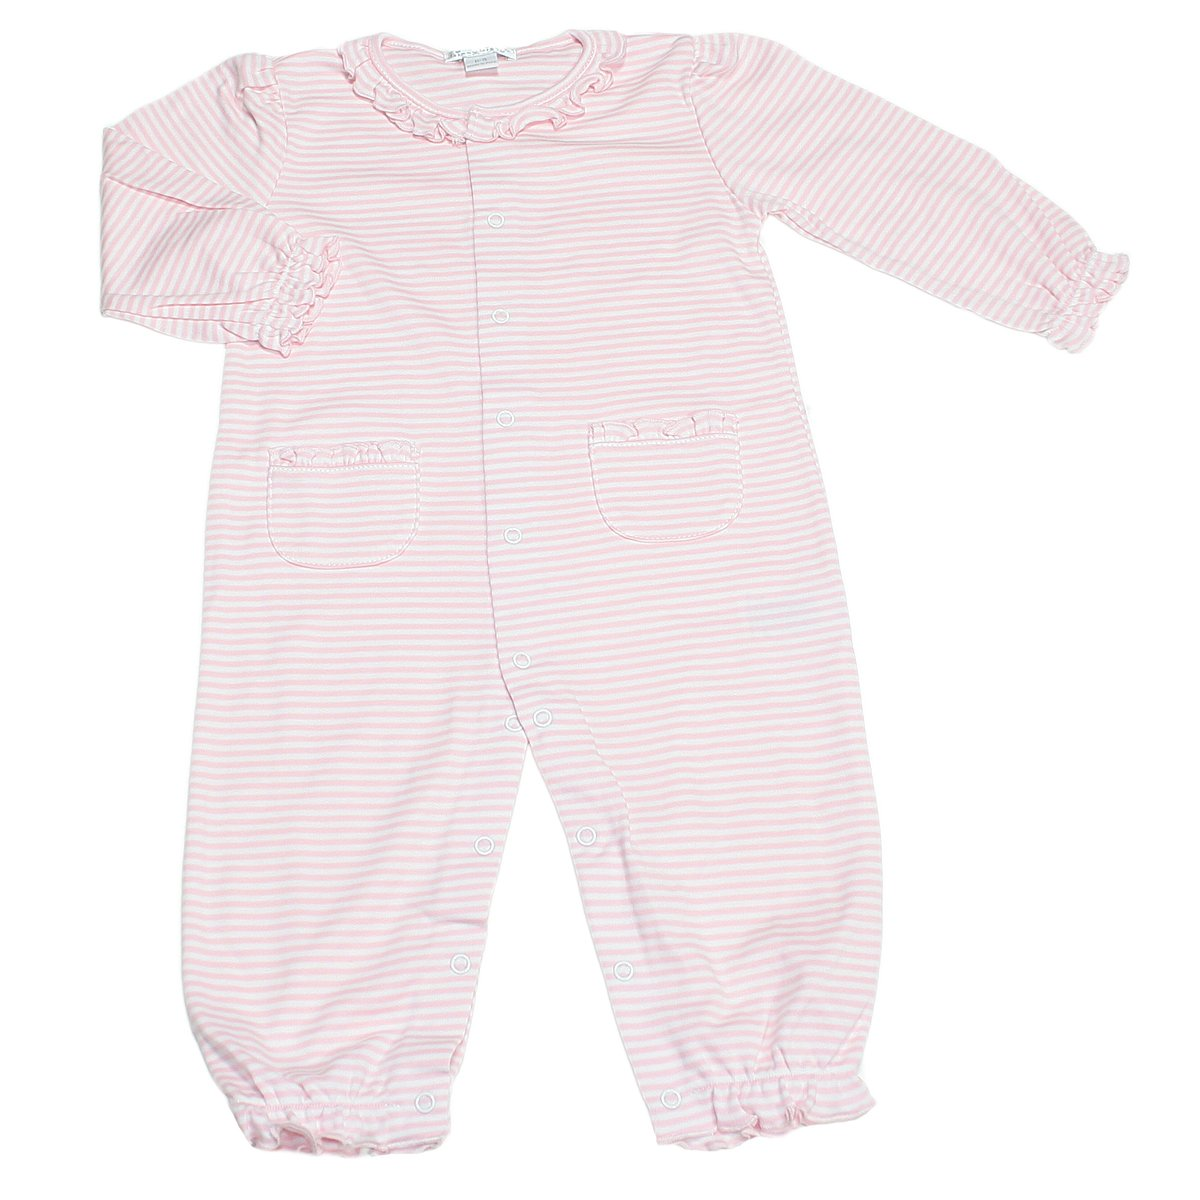 f96701895 Amazon.com  Kissy Kissy Baby Girls Stripes Pink Striped Footie With  Gathered Collar  Infant And Toddler Bodysuit Footies  Clothing